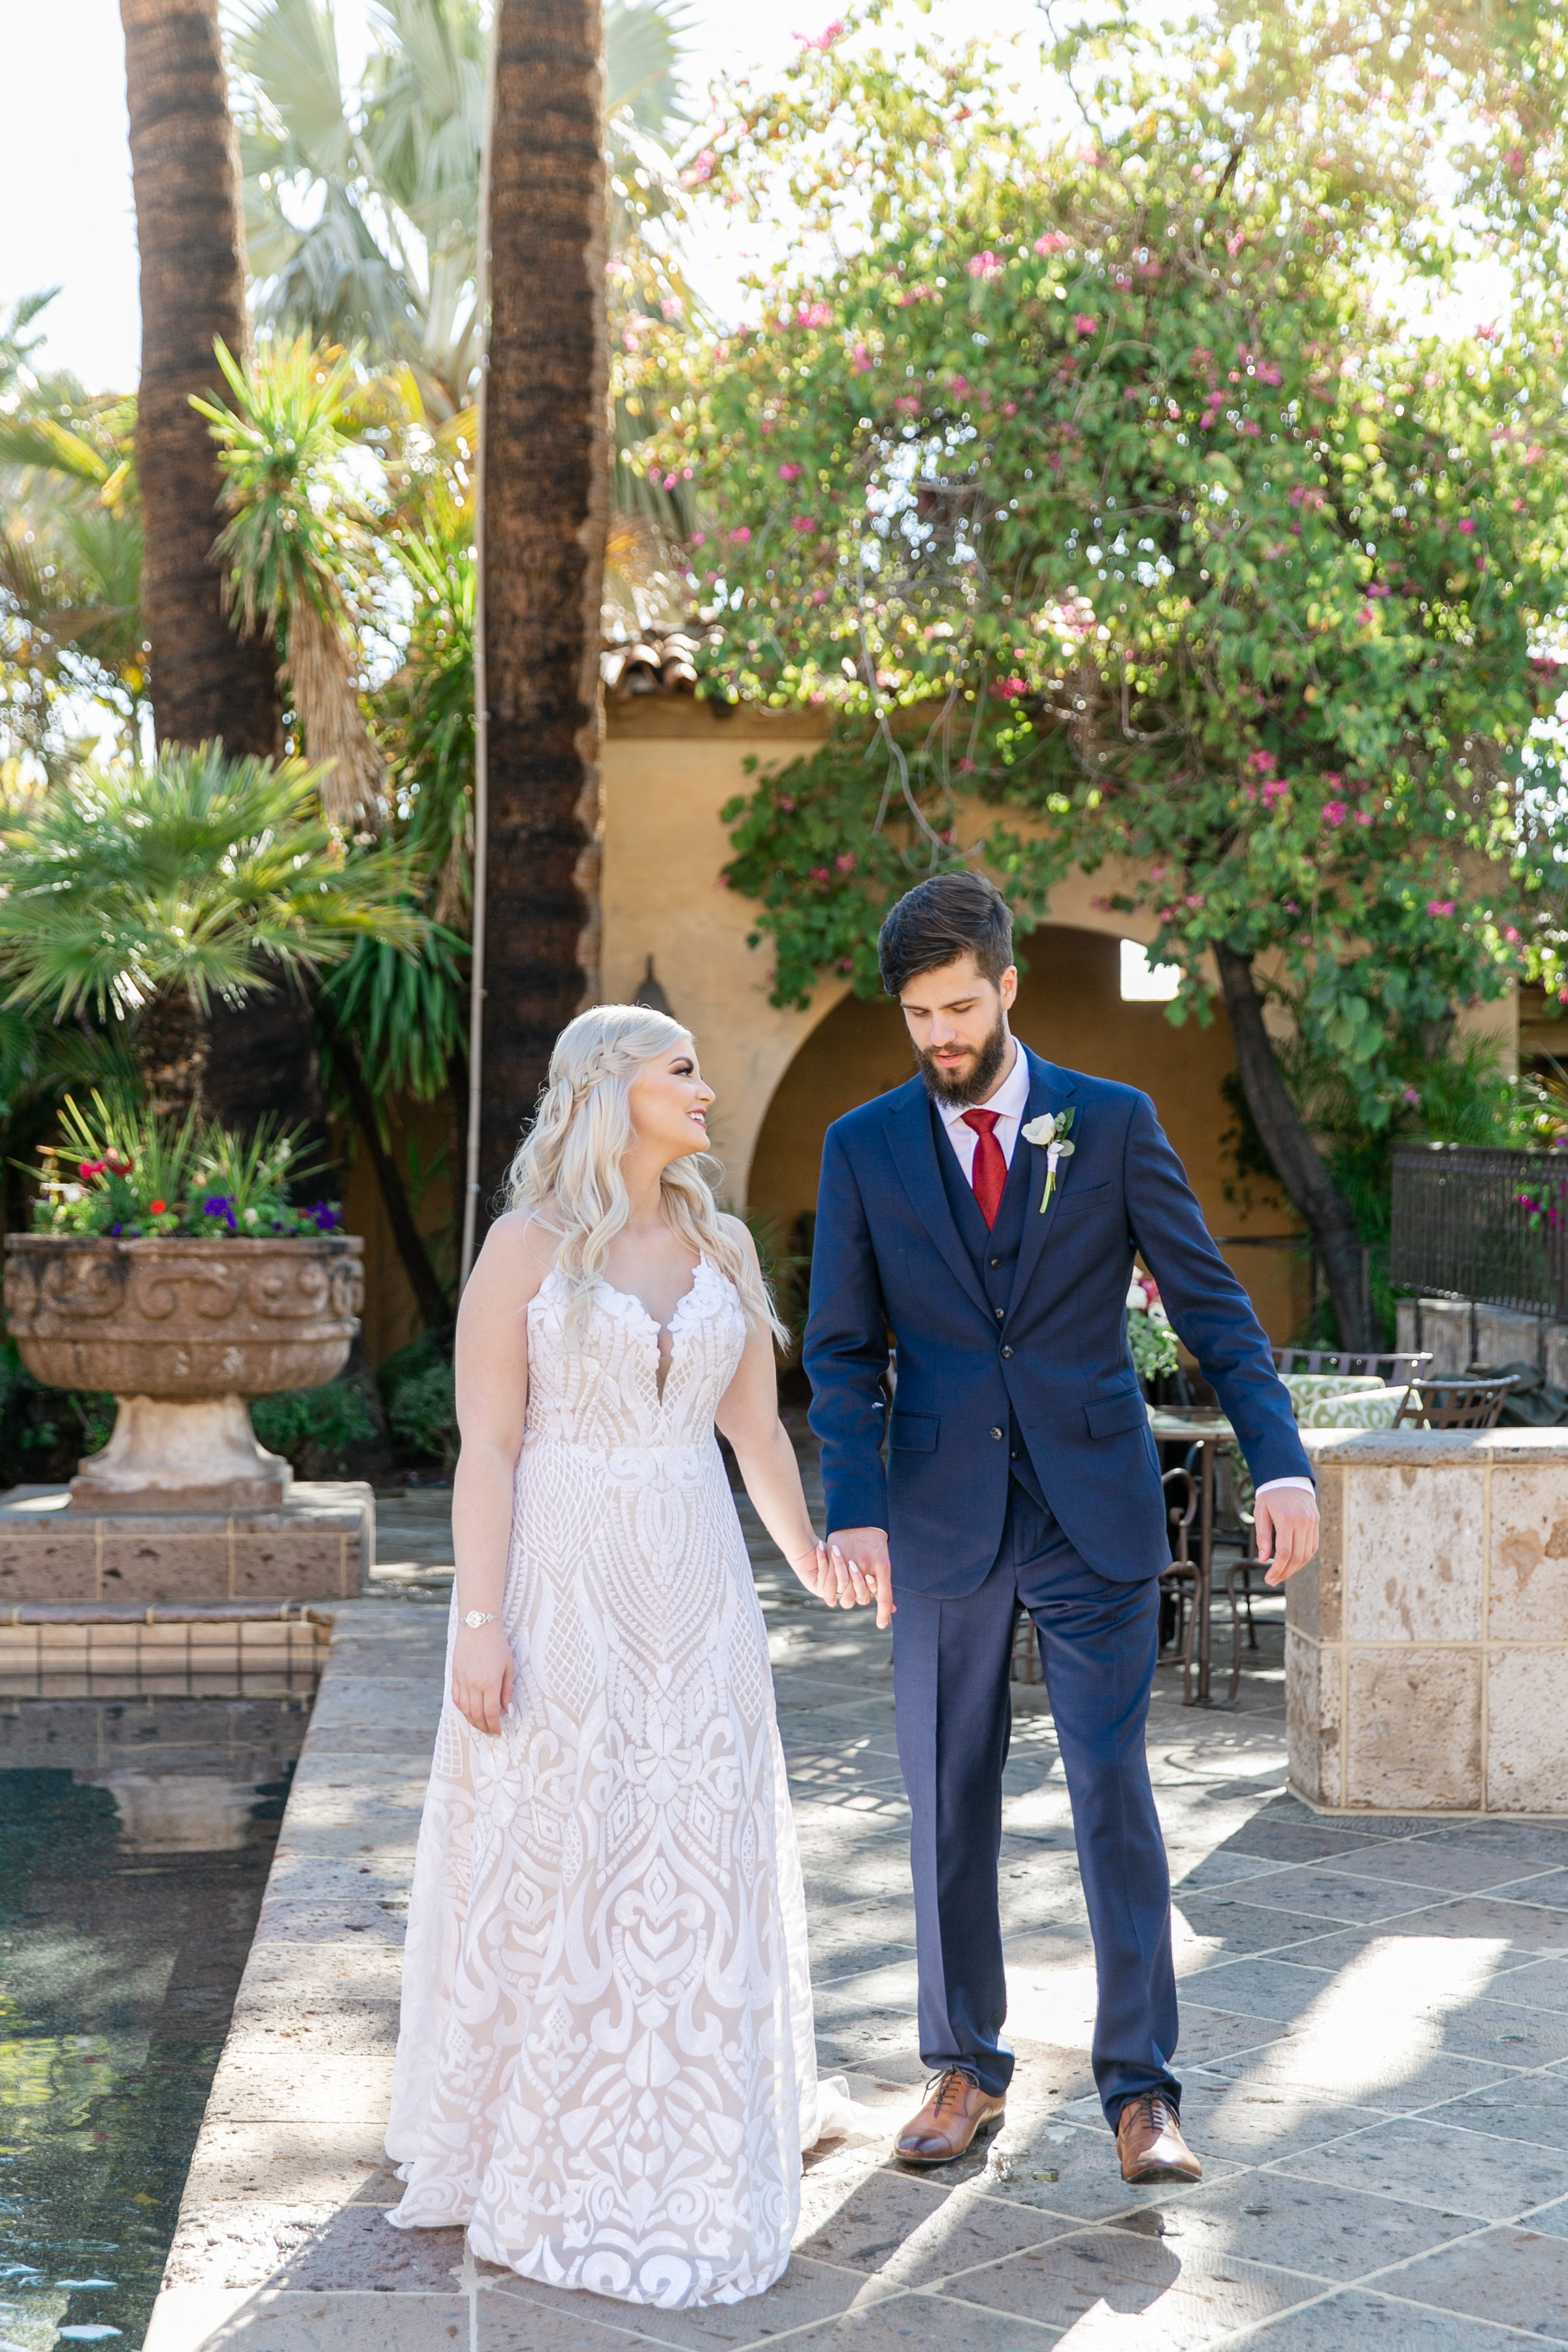 Karlie Colleen Photography - The Royal Palms Wedding - Some Like It Classic - Alex & Sam-131